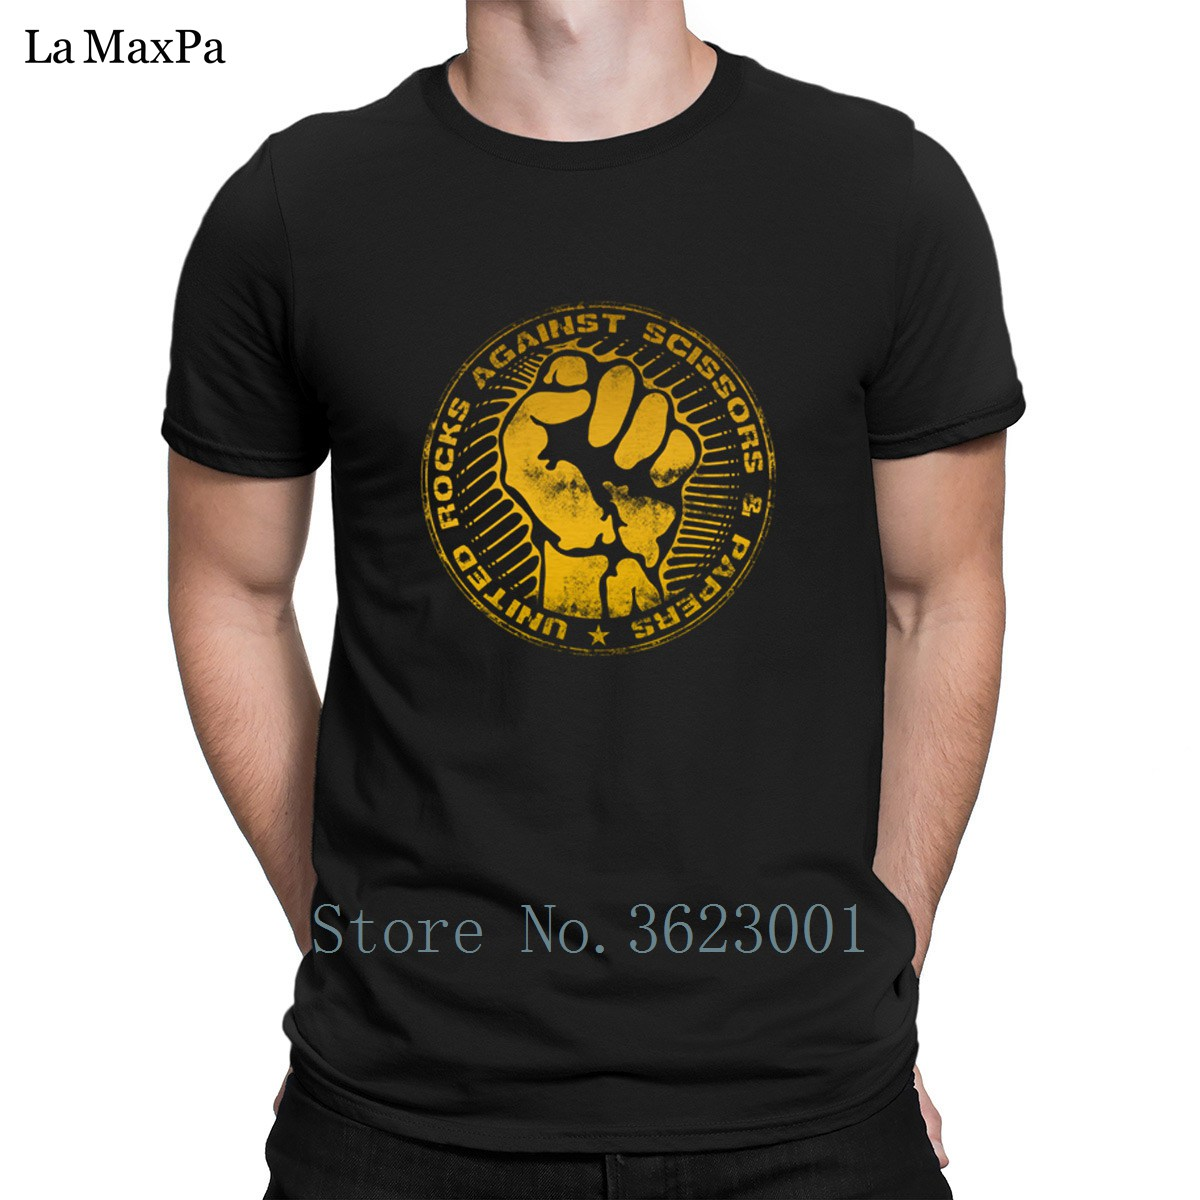 Personality Cool T Shirt For Men U.R.A.S.P. Tee Shirt Mens Basic Solid T-Shirt Hilarious Mens Tshirt Size S-3xl Famous